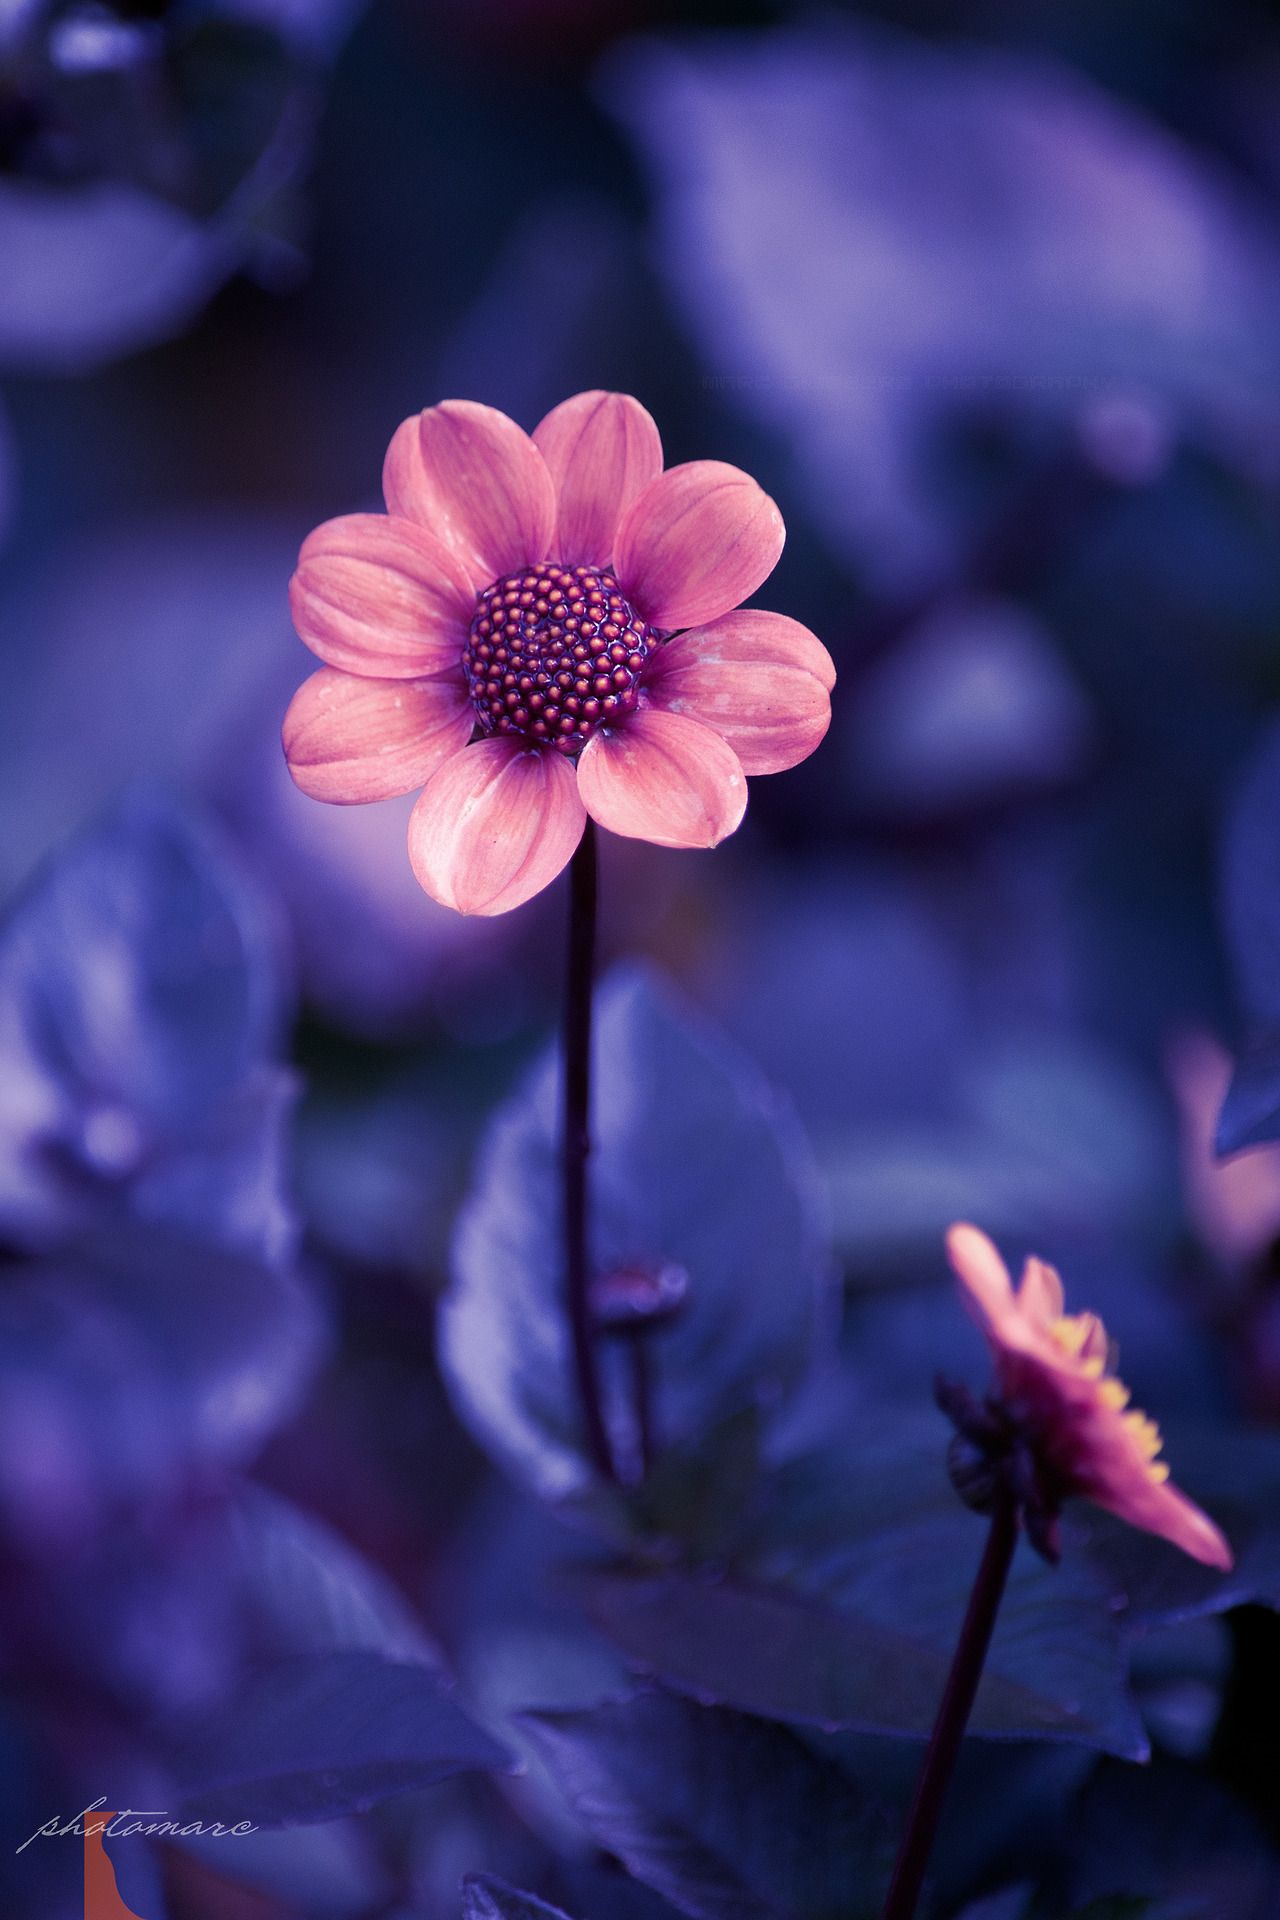 P H O T O M A R C Beautiful Flowers Wallpapers Flowers Nature Wonderful Flowers